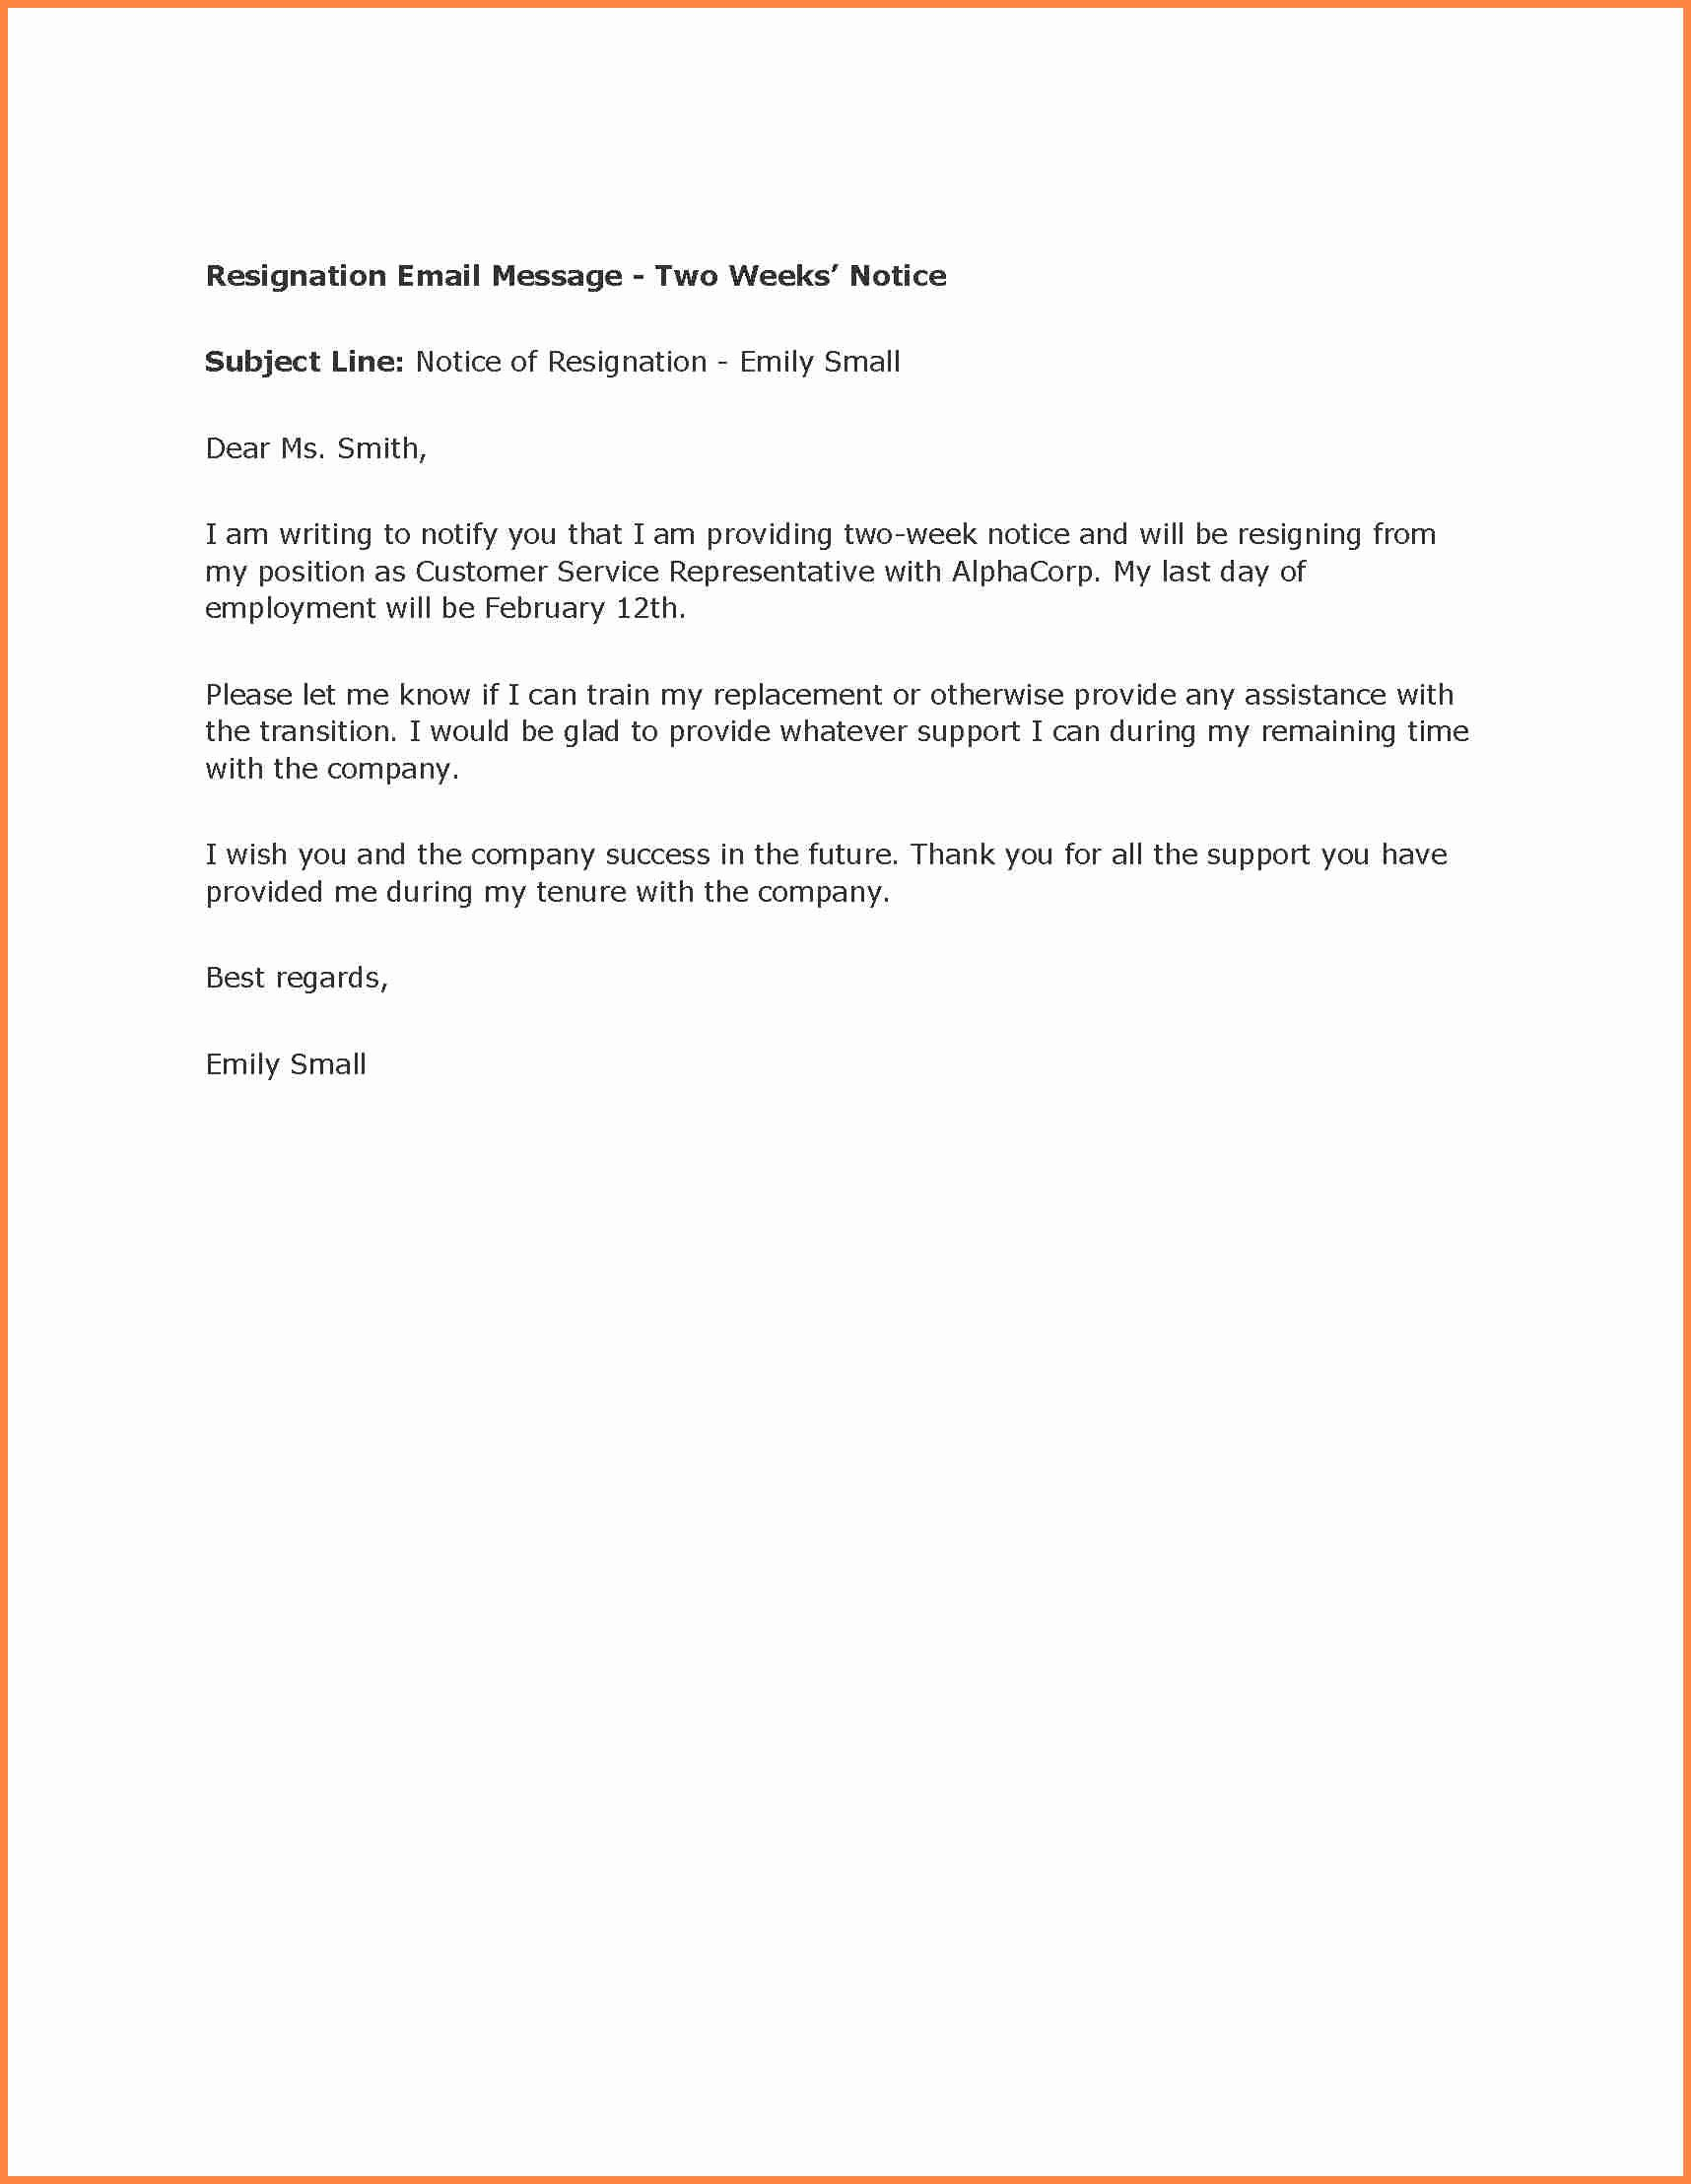 Resignation Letter Two Weeks Notice Luxury 8 Example Letter Of Resignation 2 Week Notice